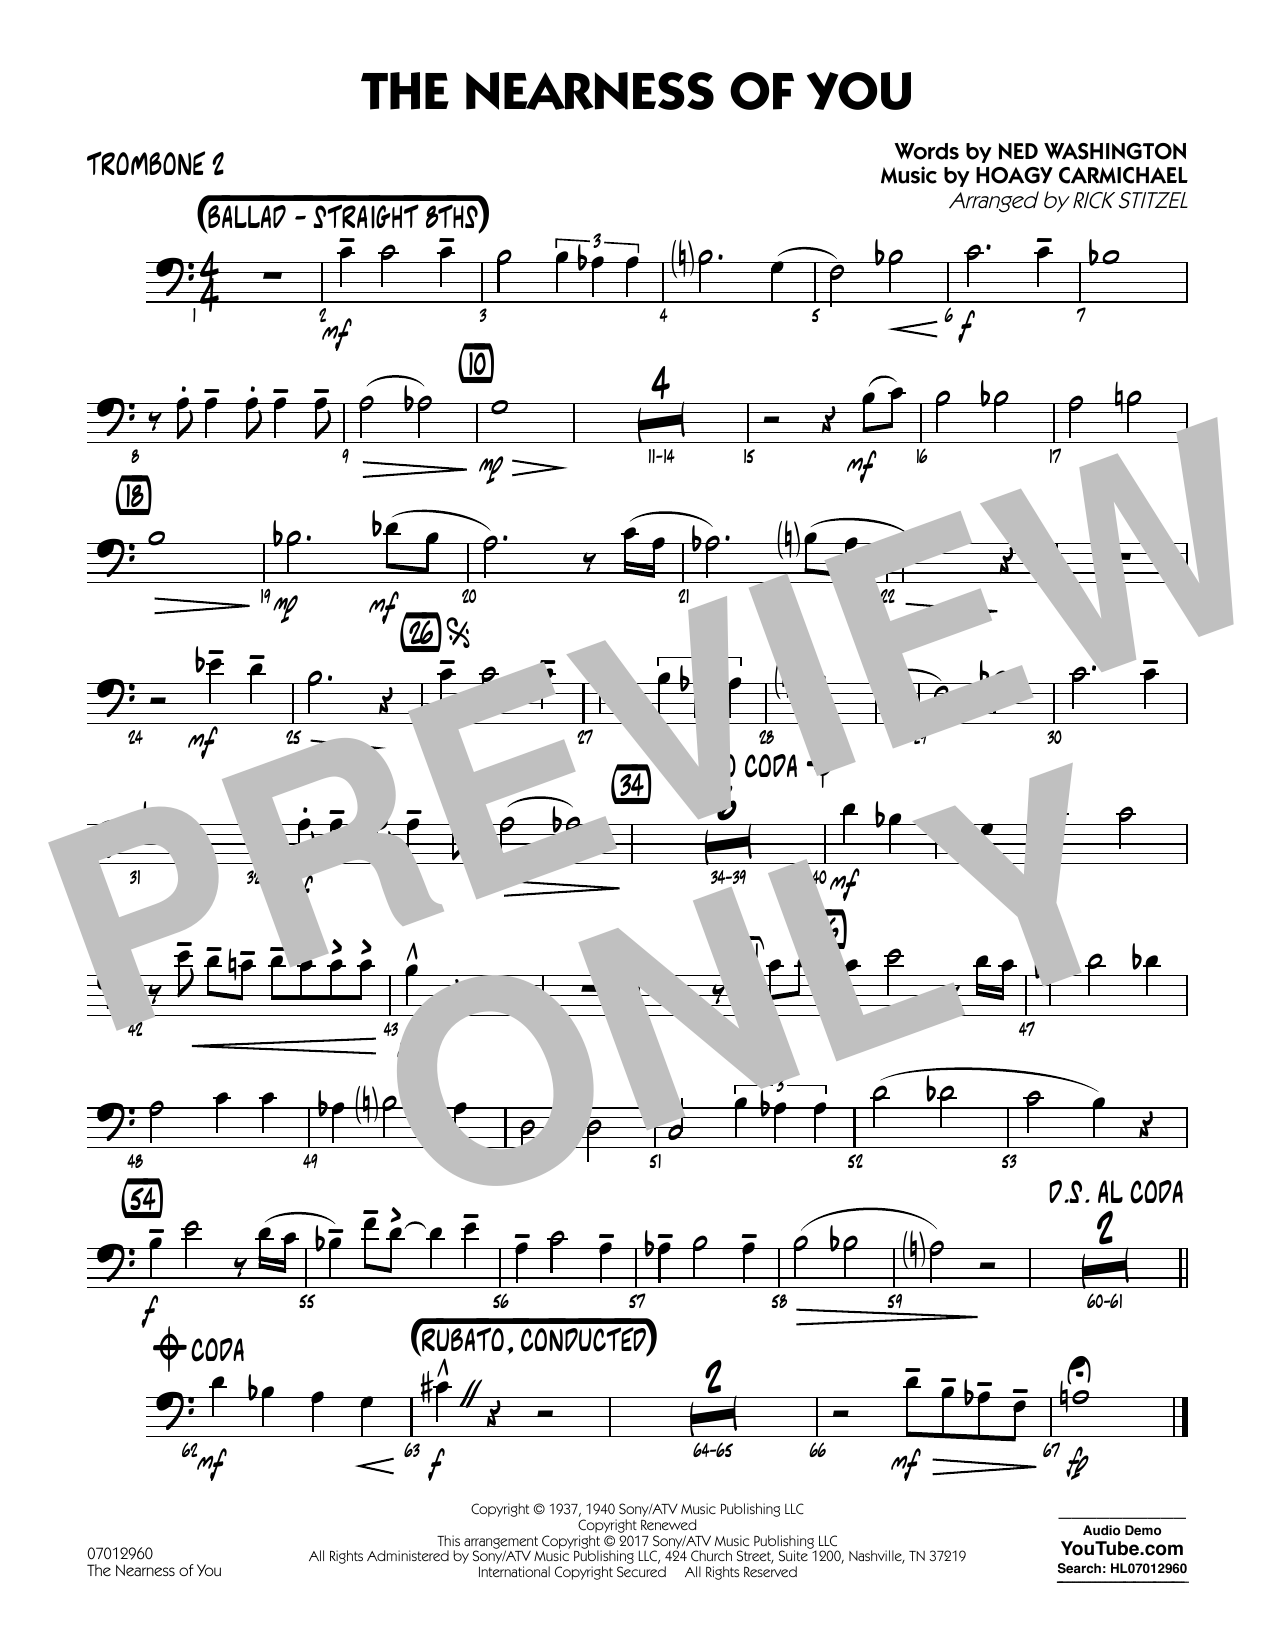 Rick Stitzel The Nearness of You (Key: C) - Trombone 2 sheet music notes and chords. Download Printable PDF.